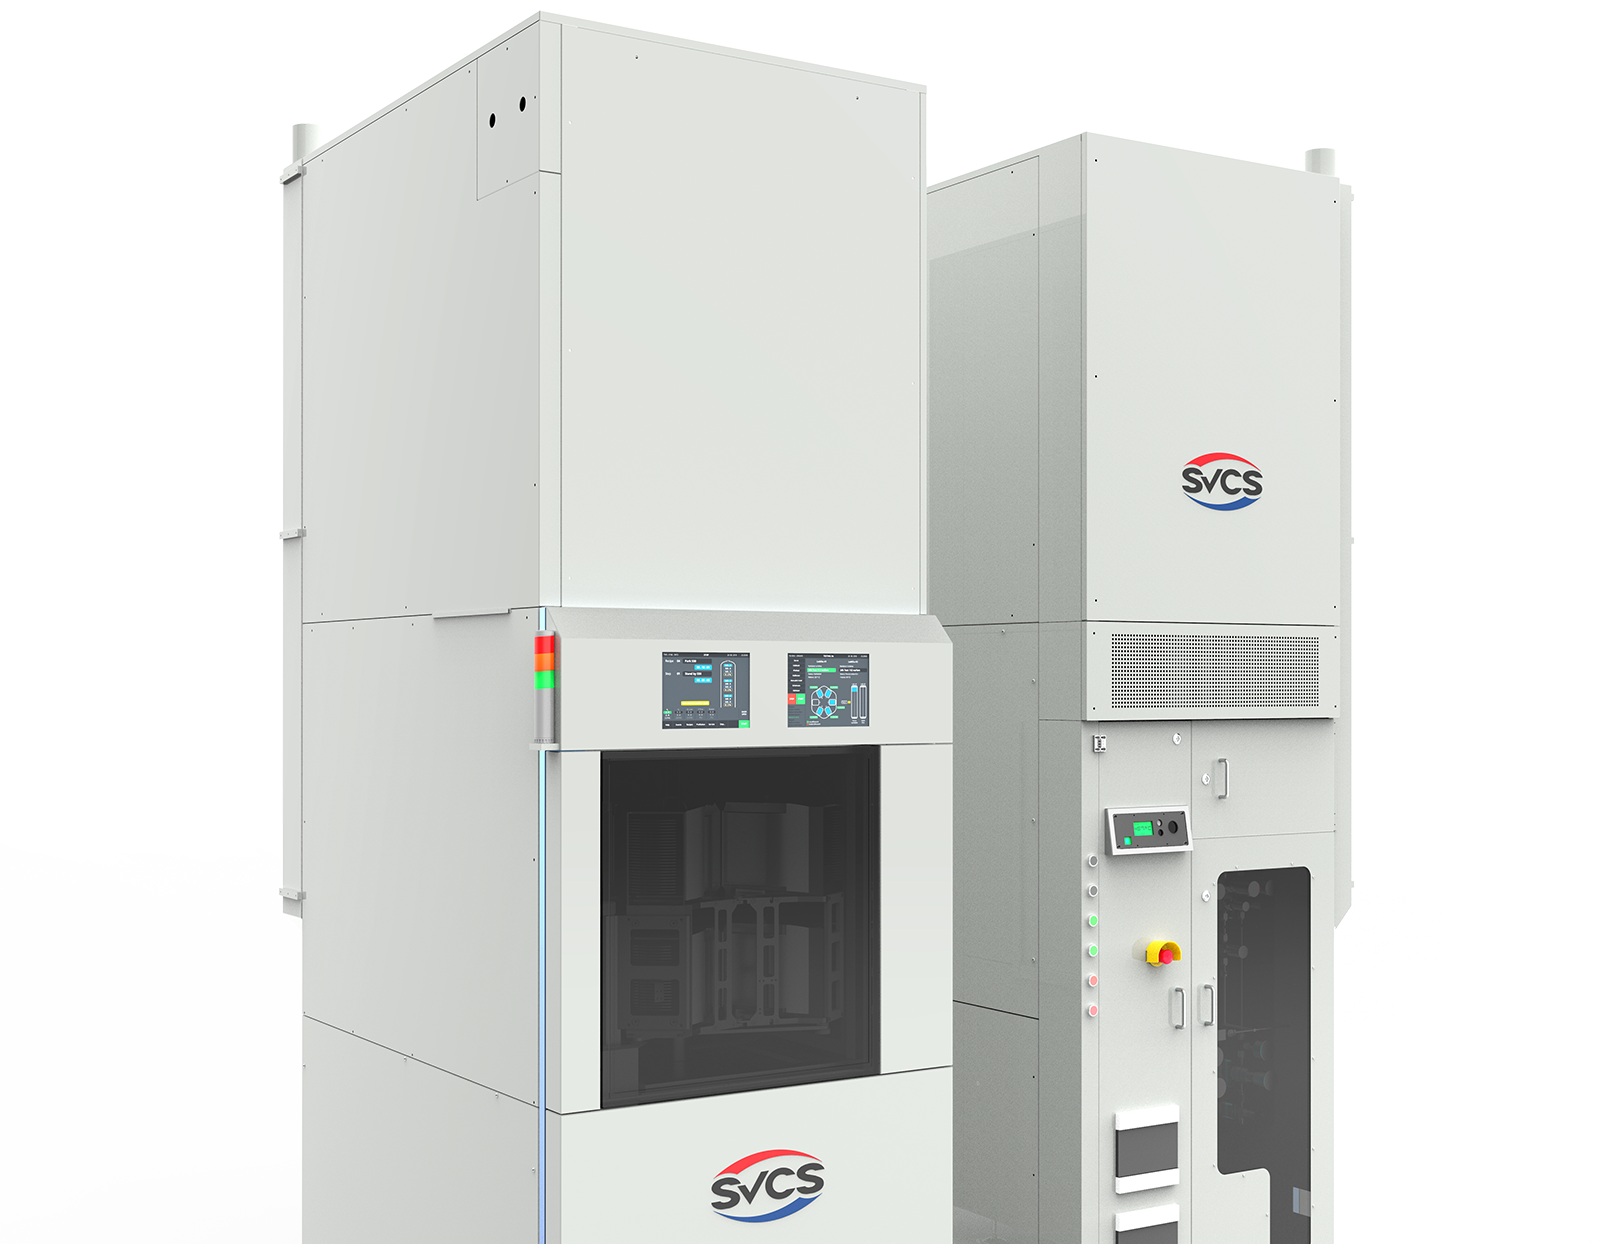 https://www.empbv.com/wp-content/uploads/2020/05/svcs_vertical-furnace-for-rd-and-production.png